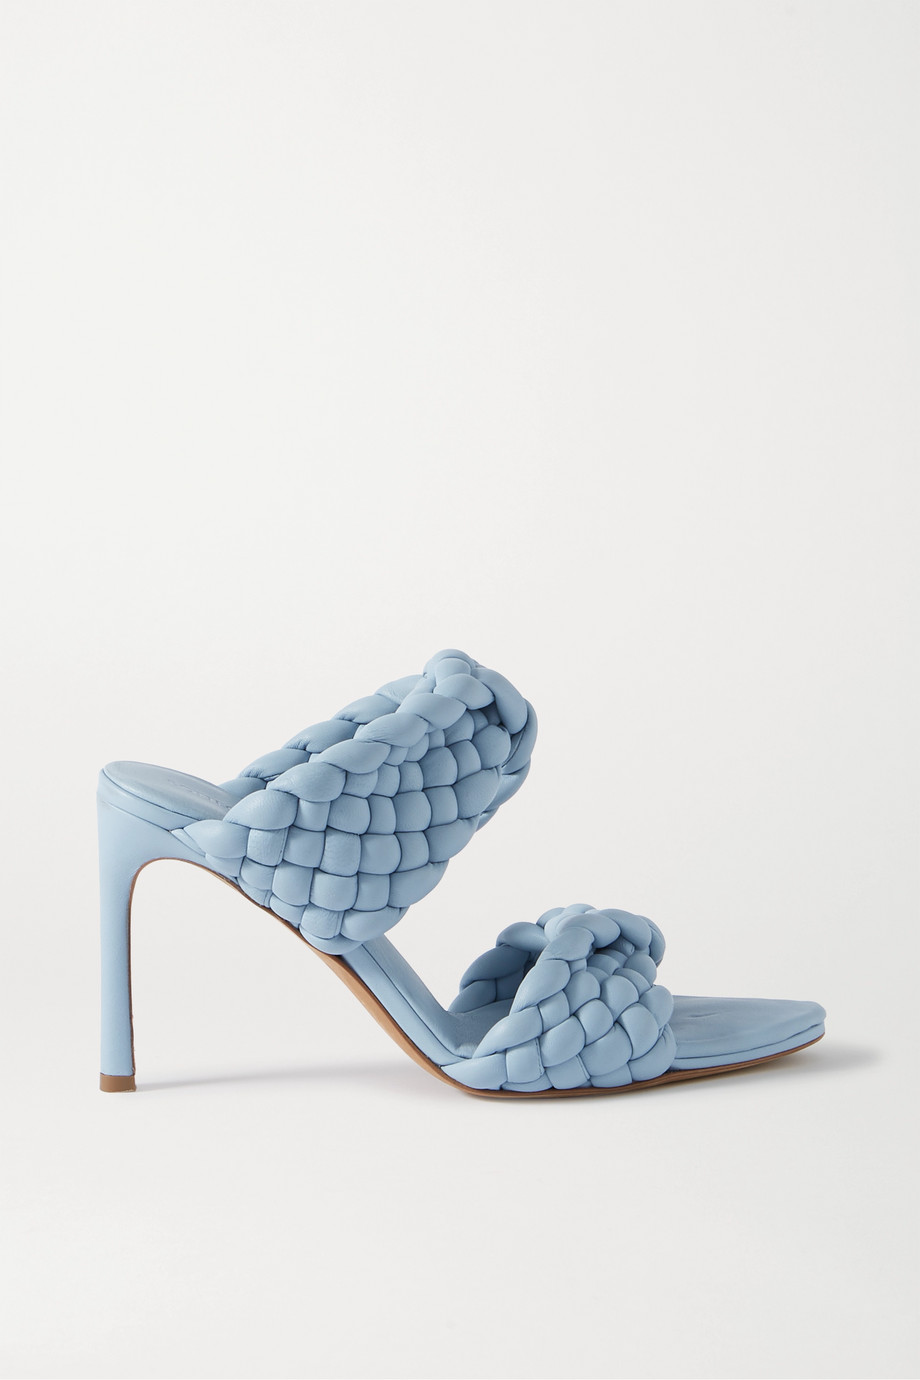 Bottega Veneta Intrecciato quilted leather mules